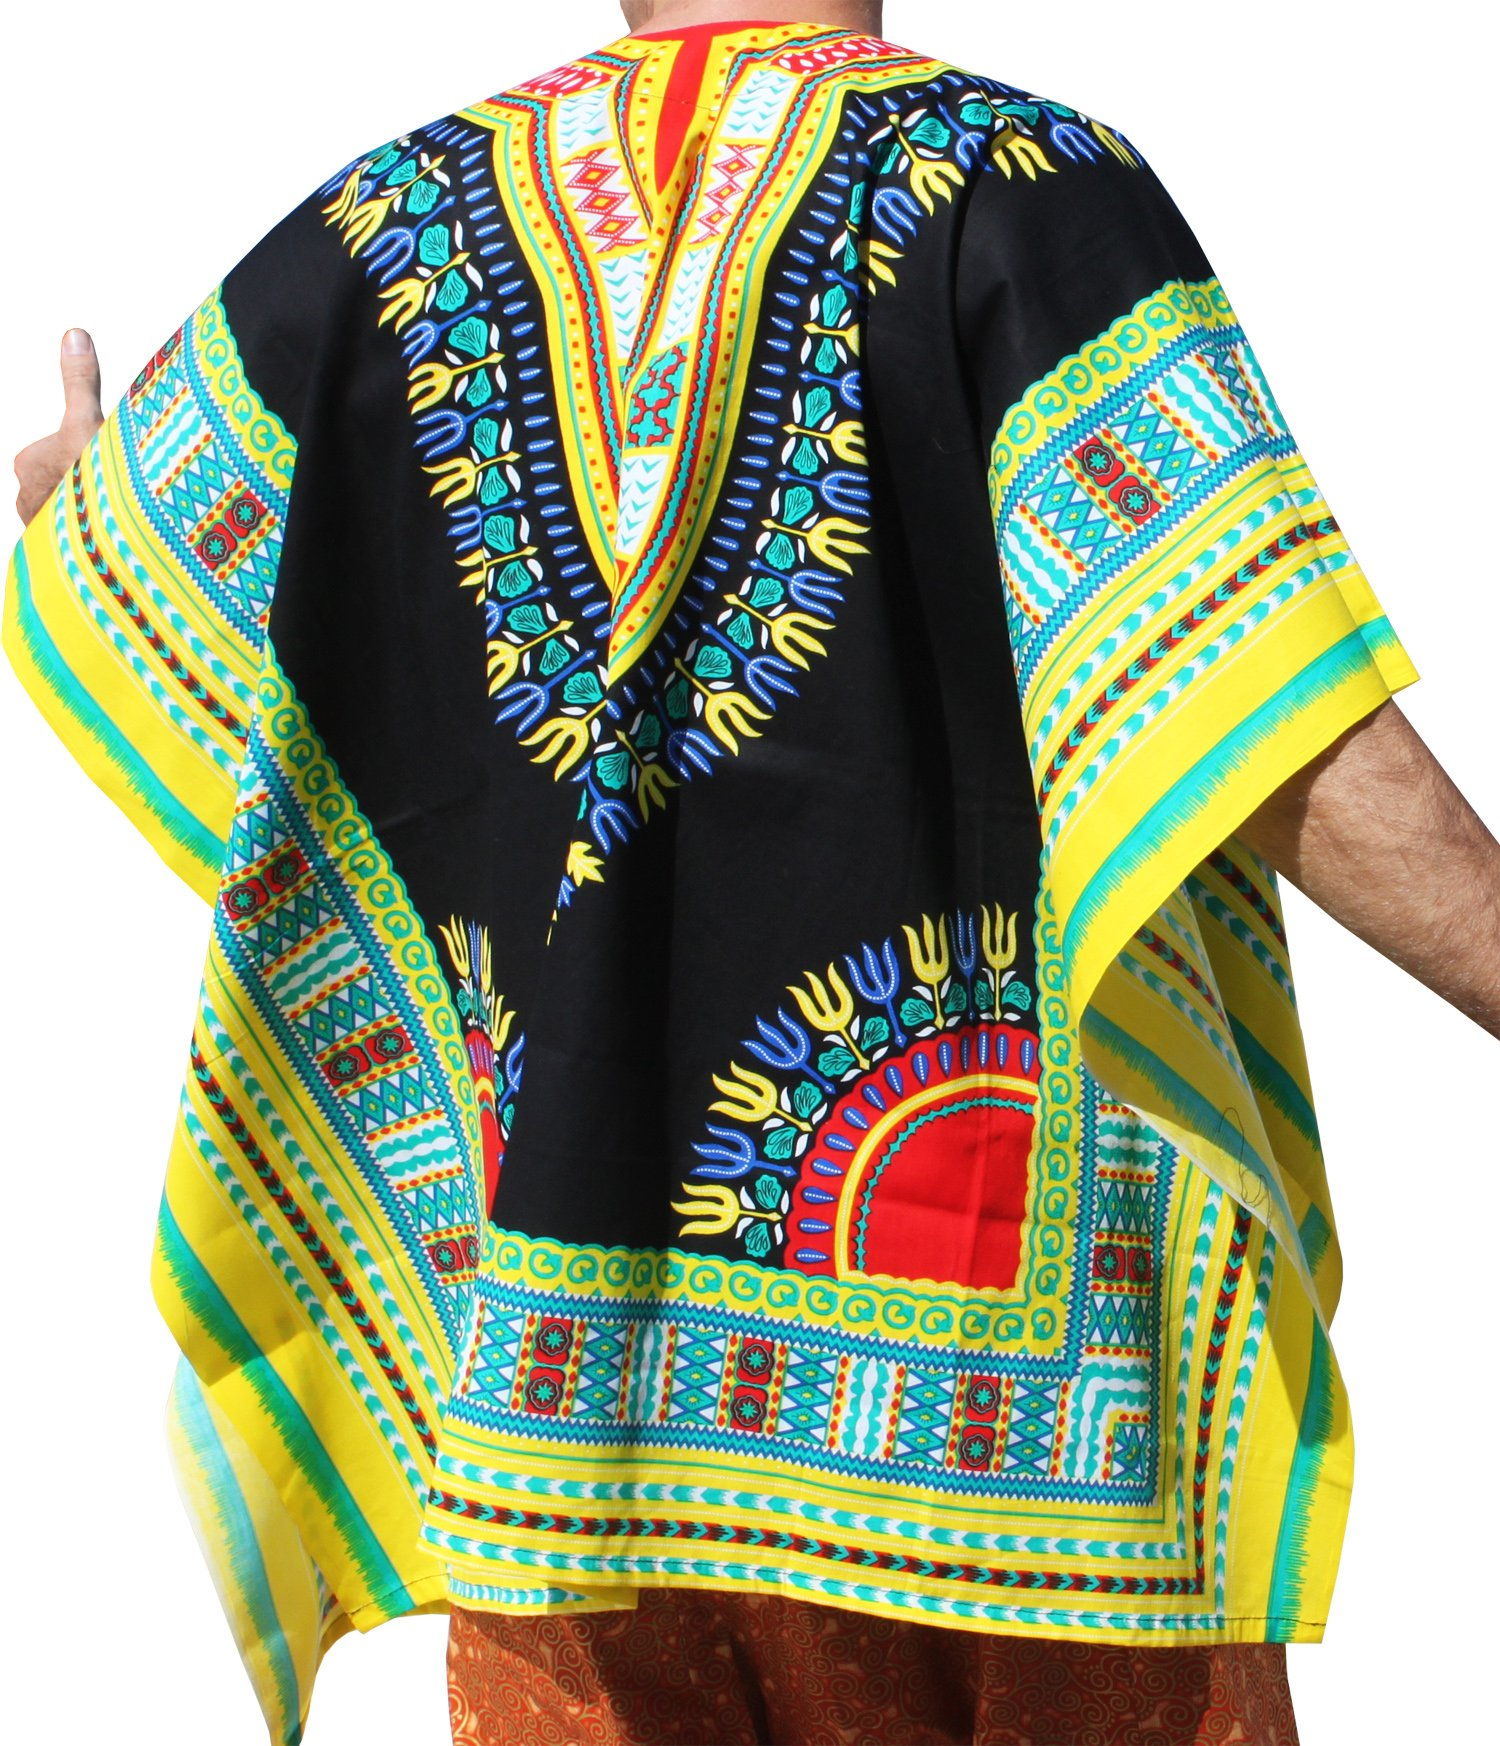 RaanPahMuang Brand Throw Over Poncho Top (Fully Open Sides) African Dashiki Art, Black With Yellow Multi by RaanPahMuang (Image #2)